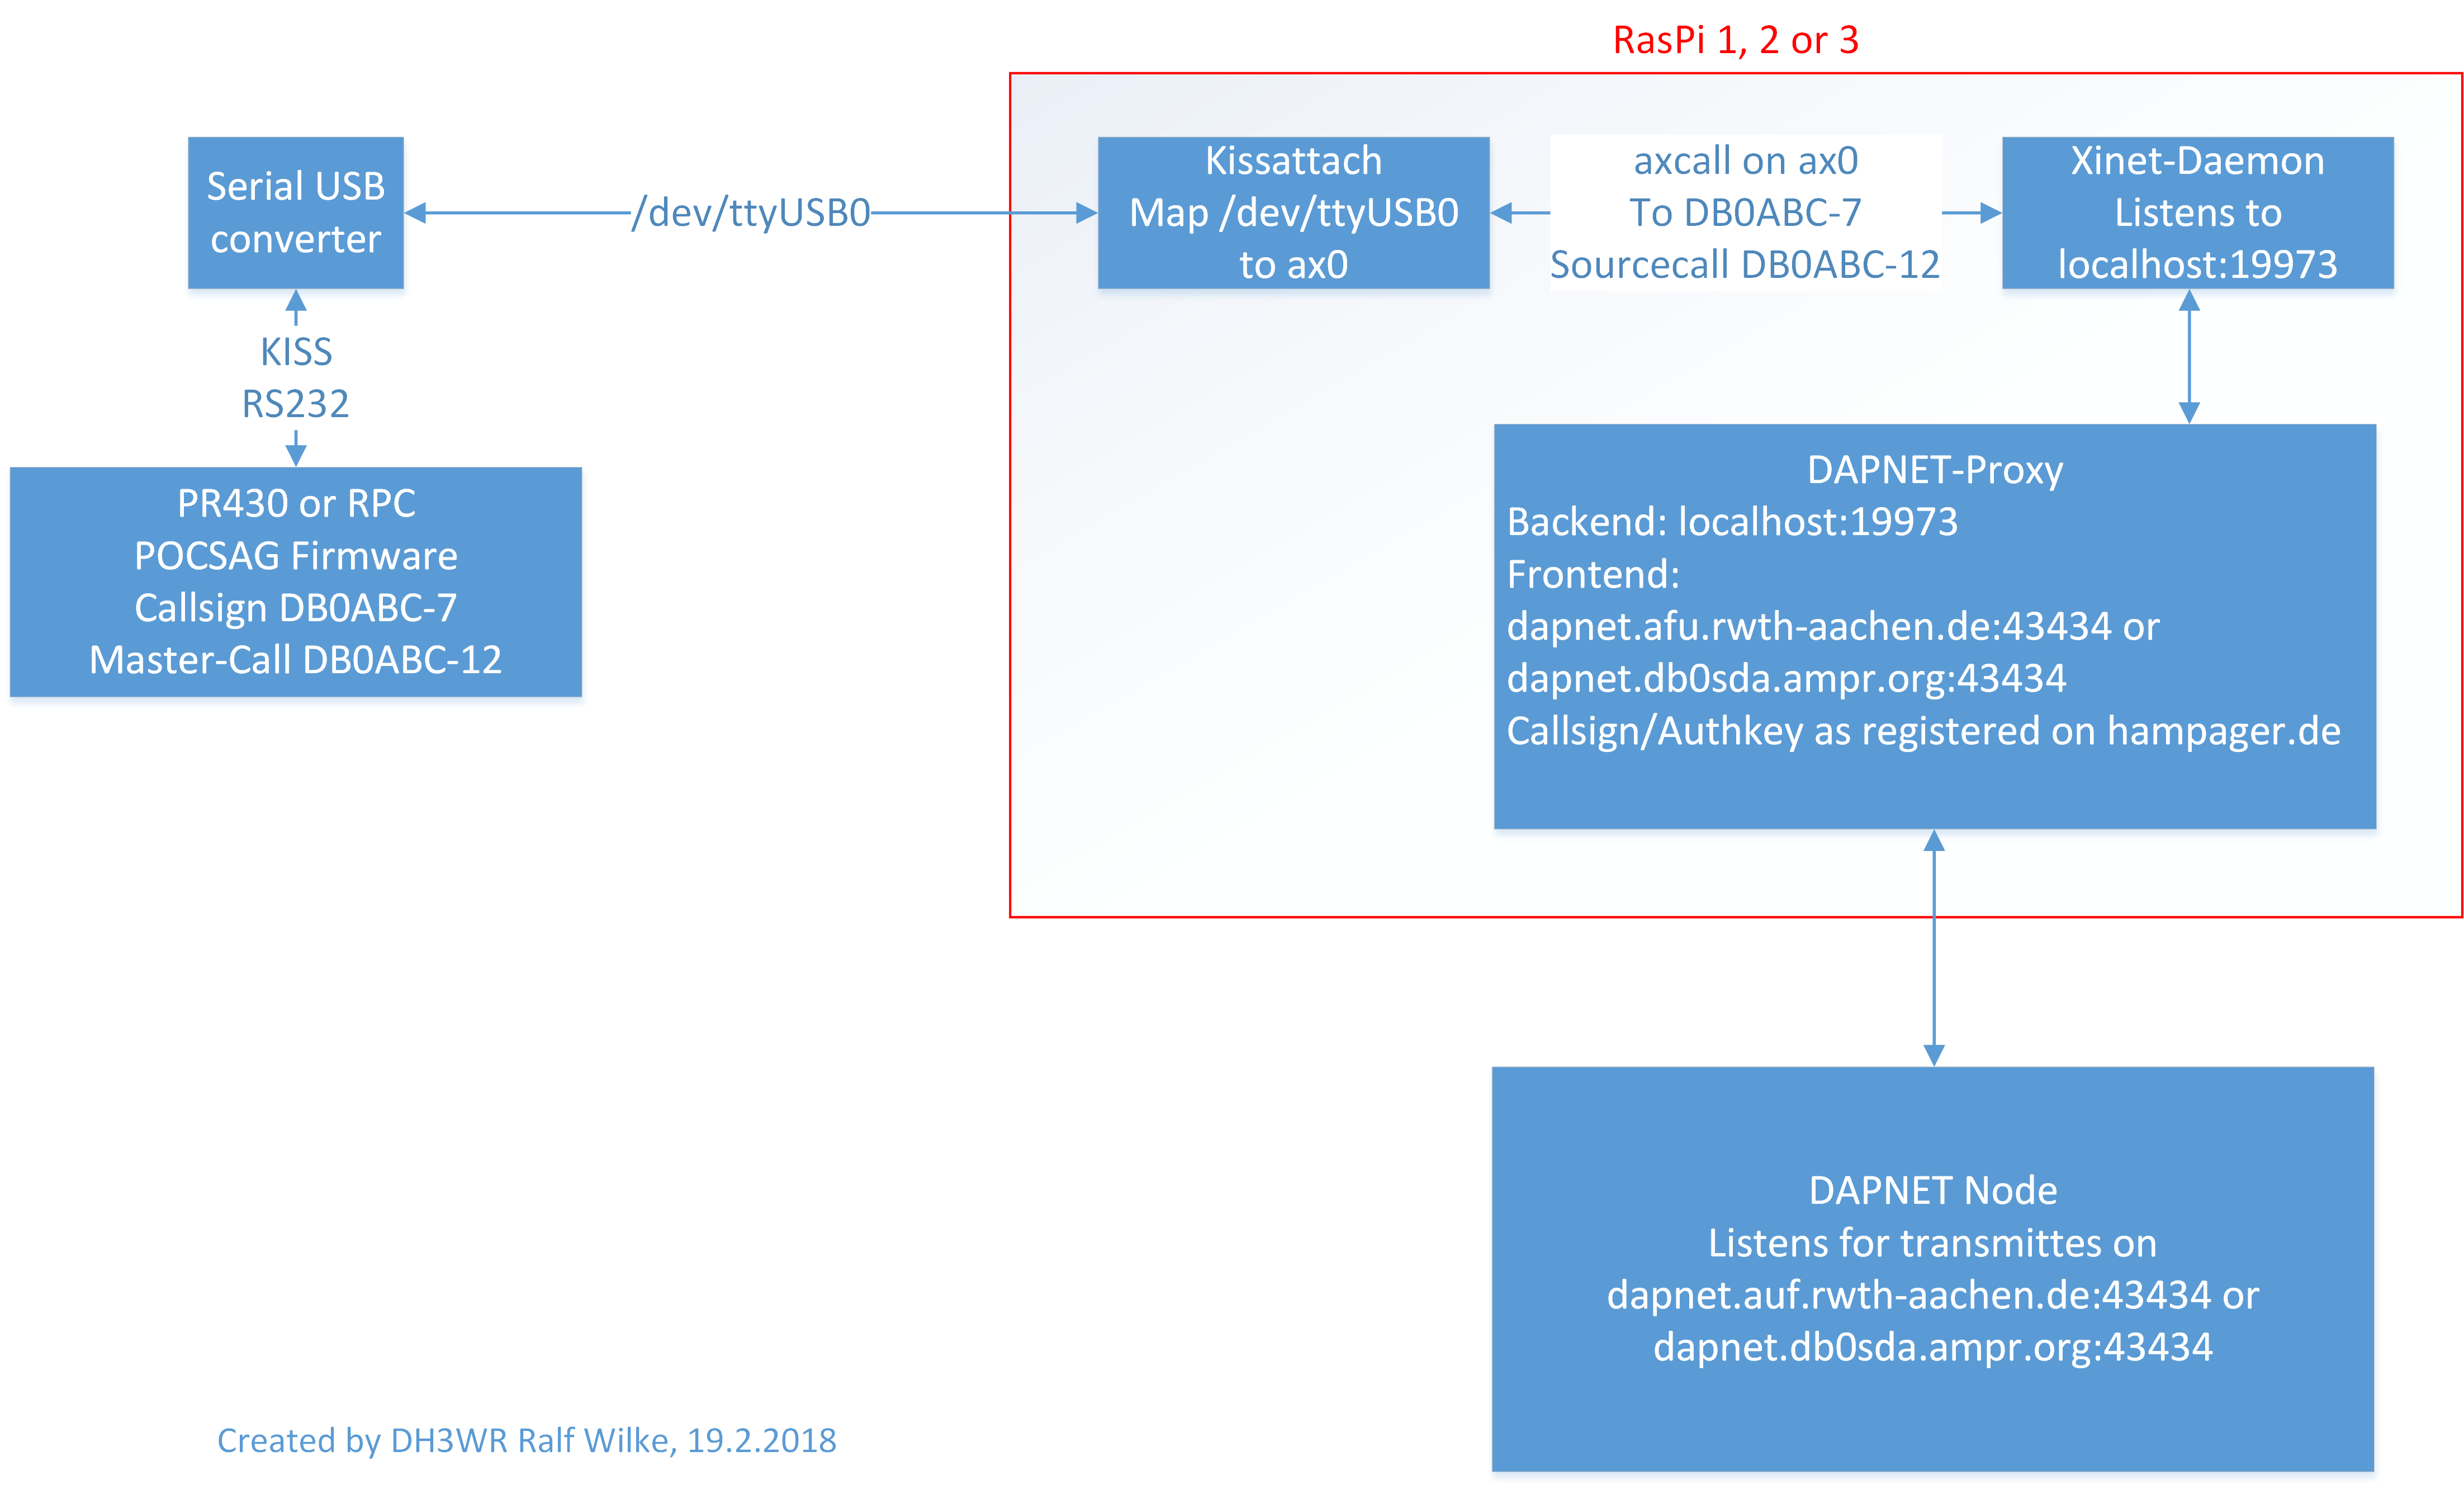 Data flow for connection of PR430 to DAPNET